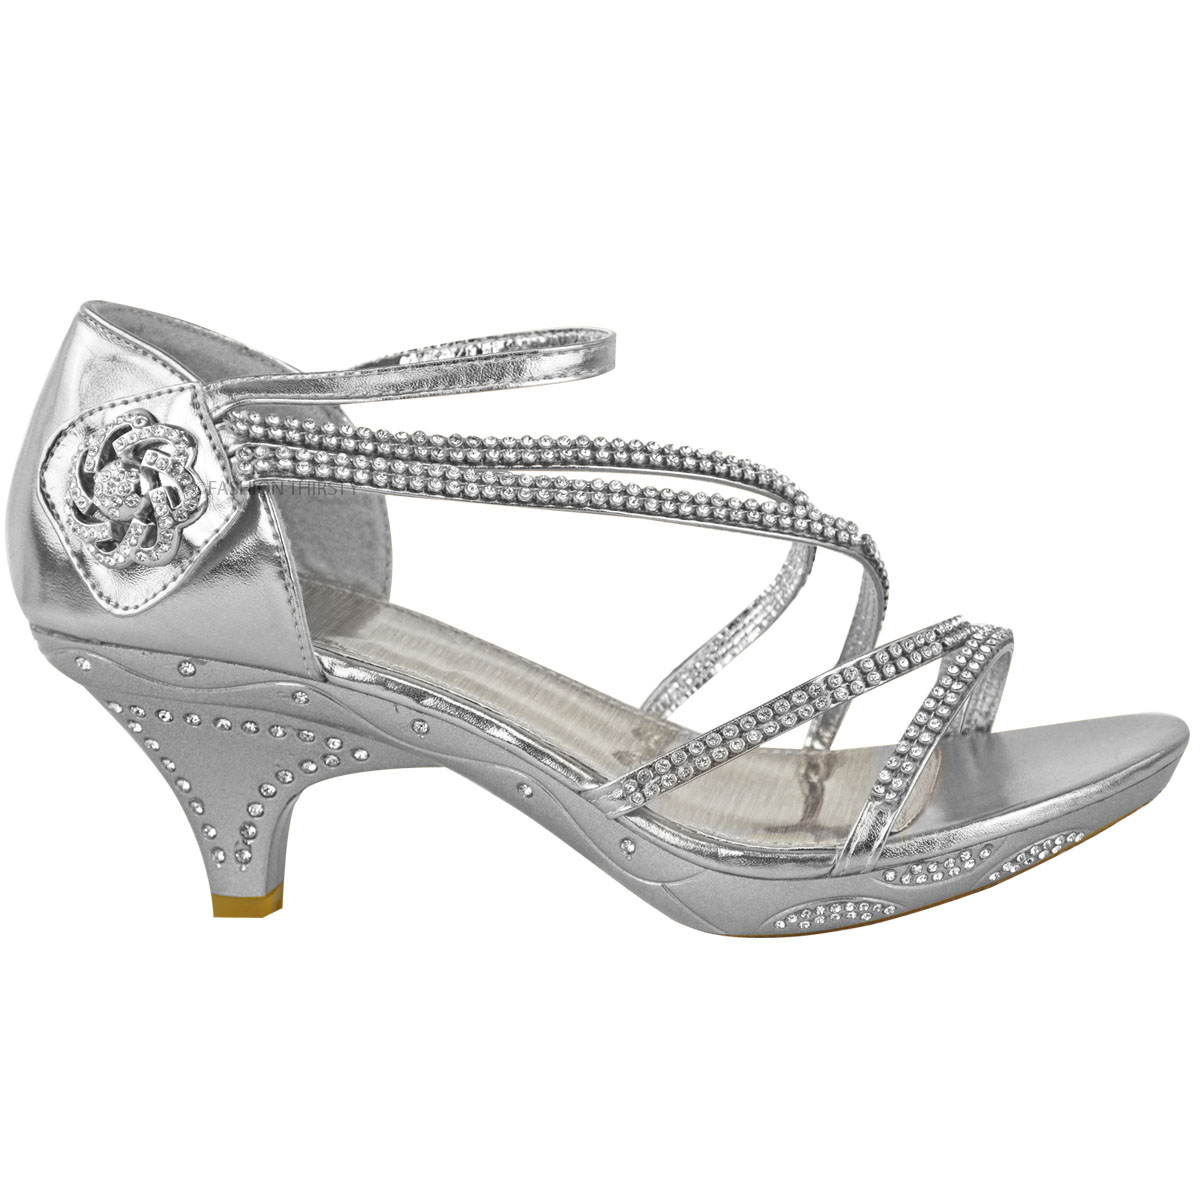 Details about Womens Ladies Low Heel Diamante Bridal Wedding Sandals Strappy Party Shoes Size